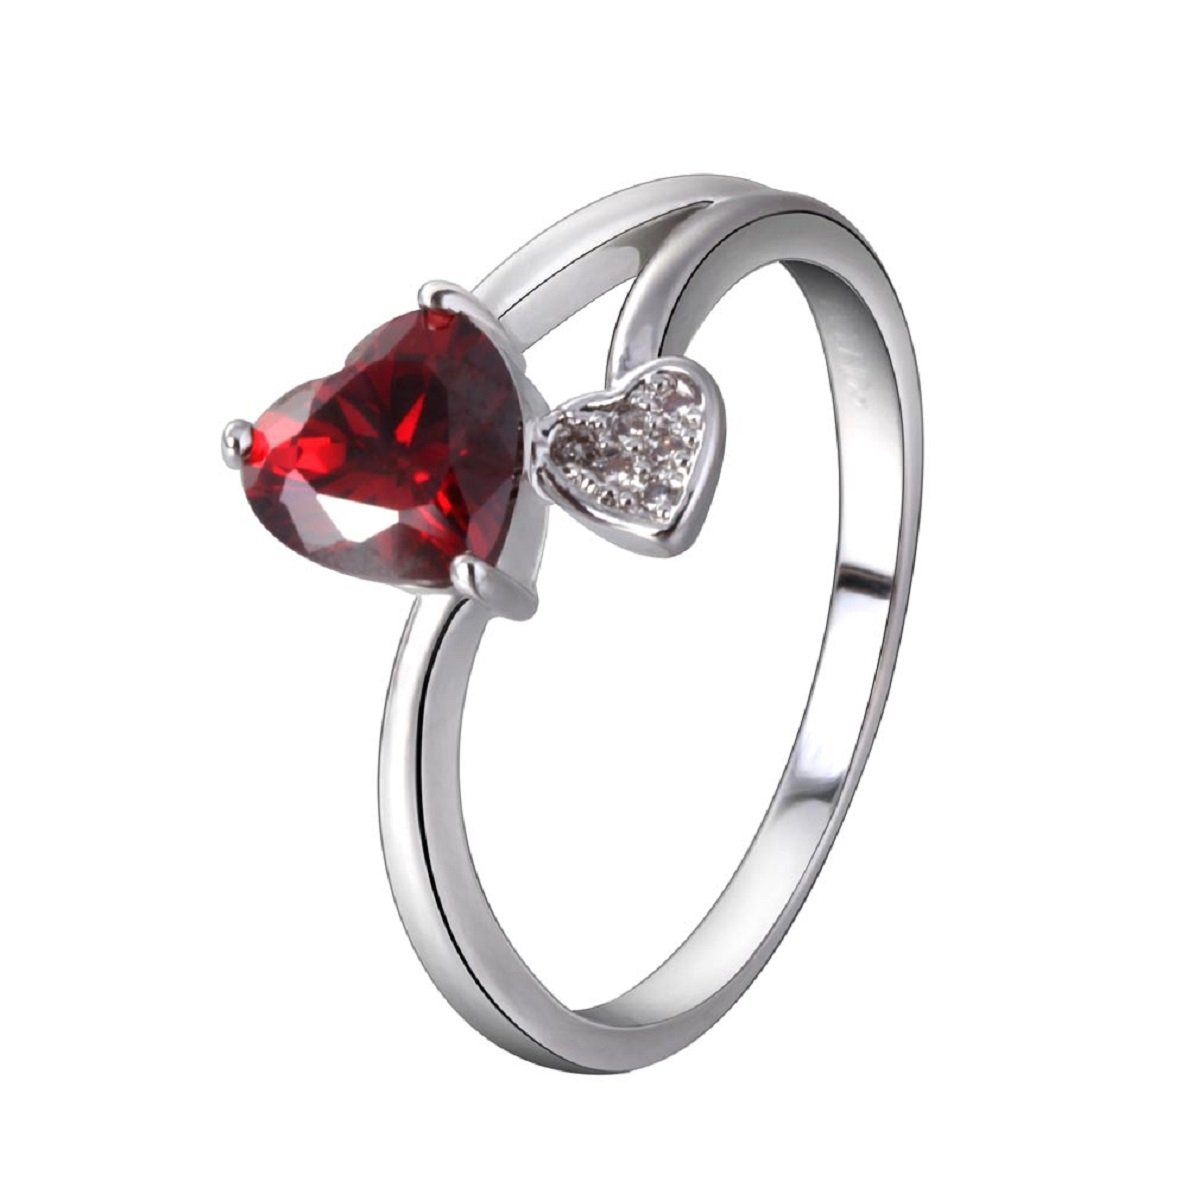 YAZILIND Silver Plated Red Cubic Zirconia Heart Eternity Ring Love Promise Wedding Band Ring Size 8